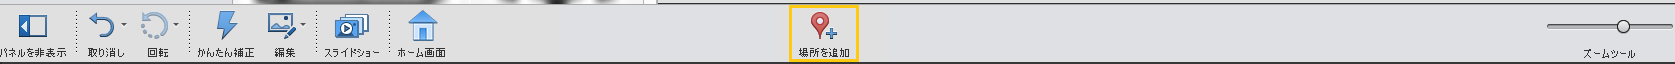 add_location_taskbar